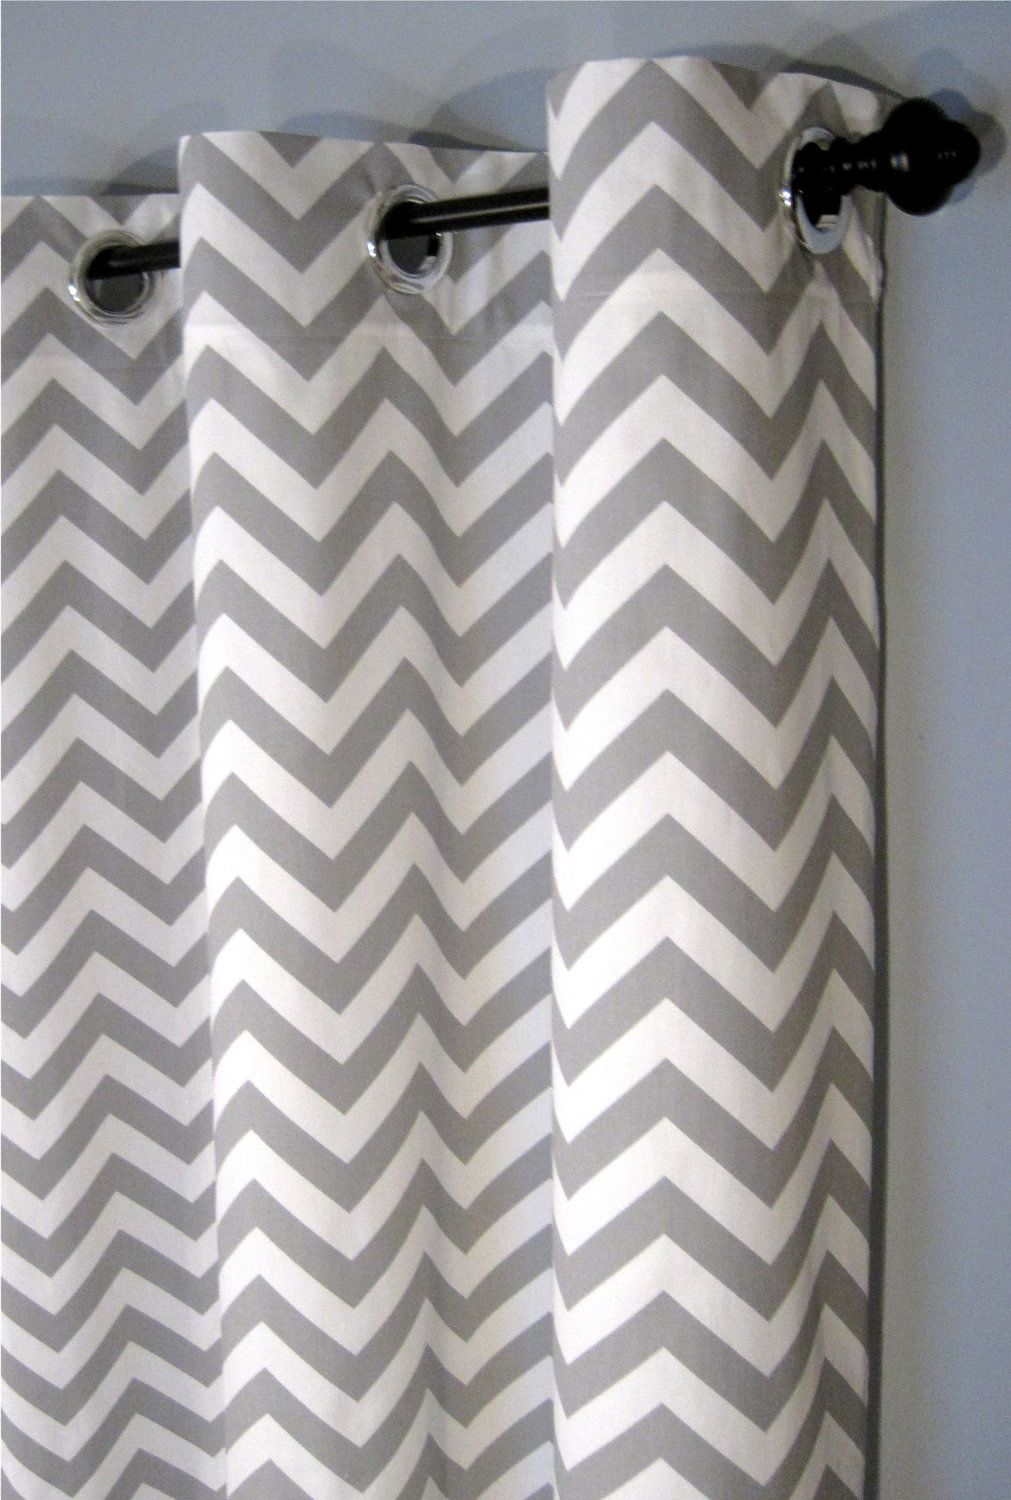 25 X 84 Inch Grey Zig Zag Grommet Curtains Two Chevron Curtain